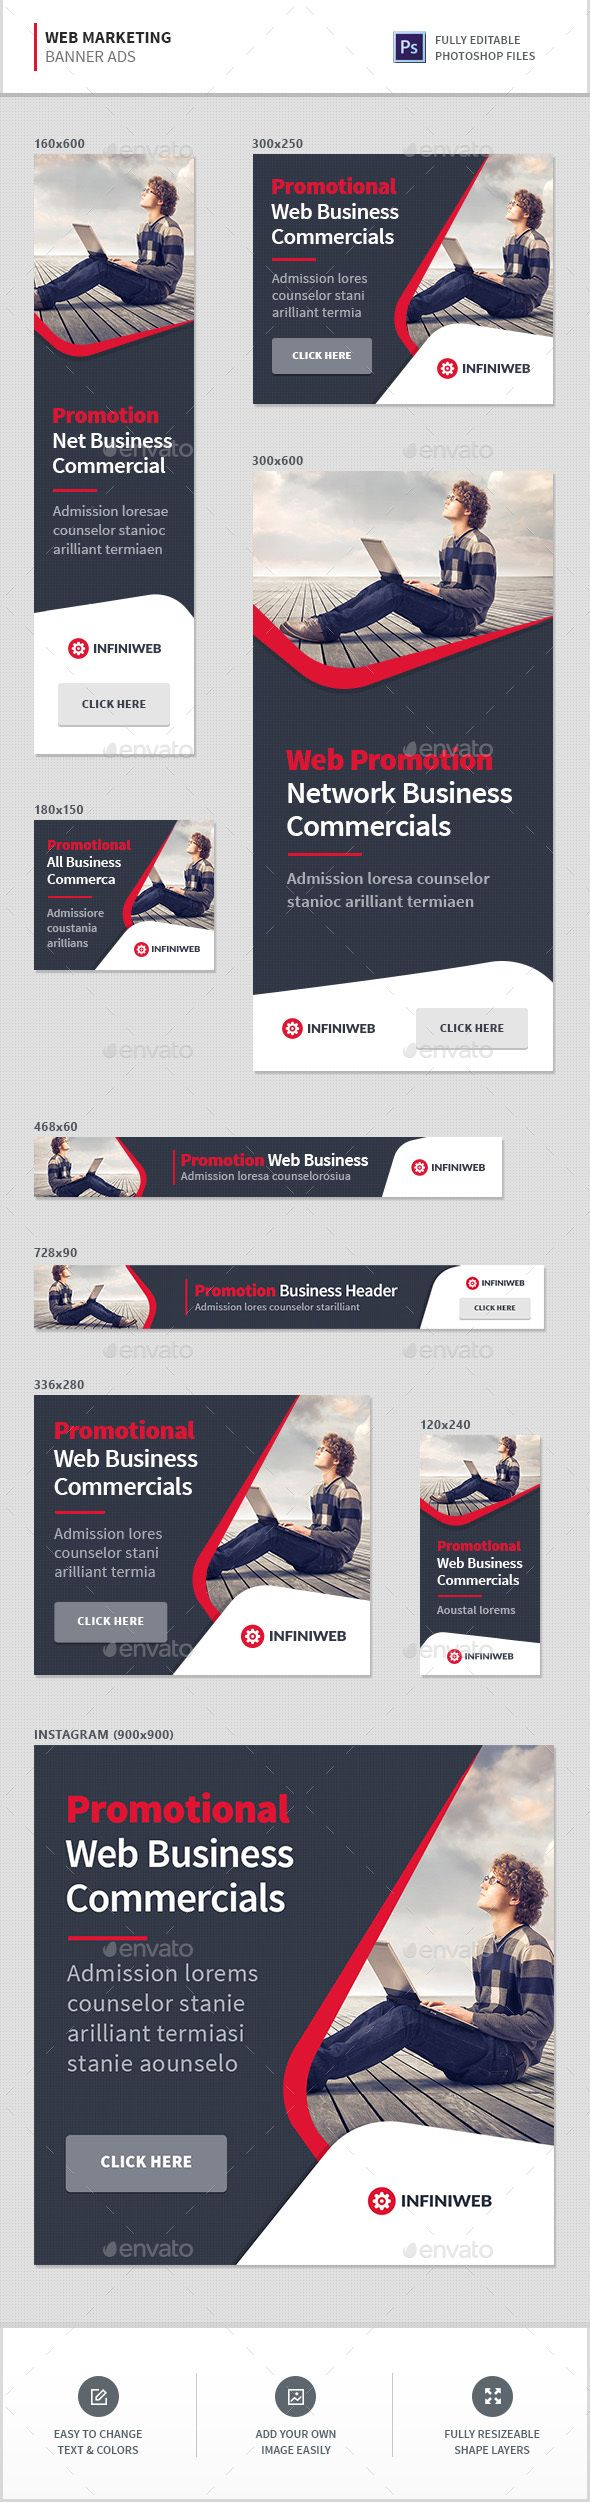 Marketing Web Banners Template PSD #promotion #ads Download here: https://graphicriver.net/item/marketing-banners/17661272?ref=ksioks